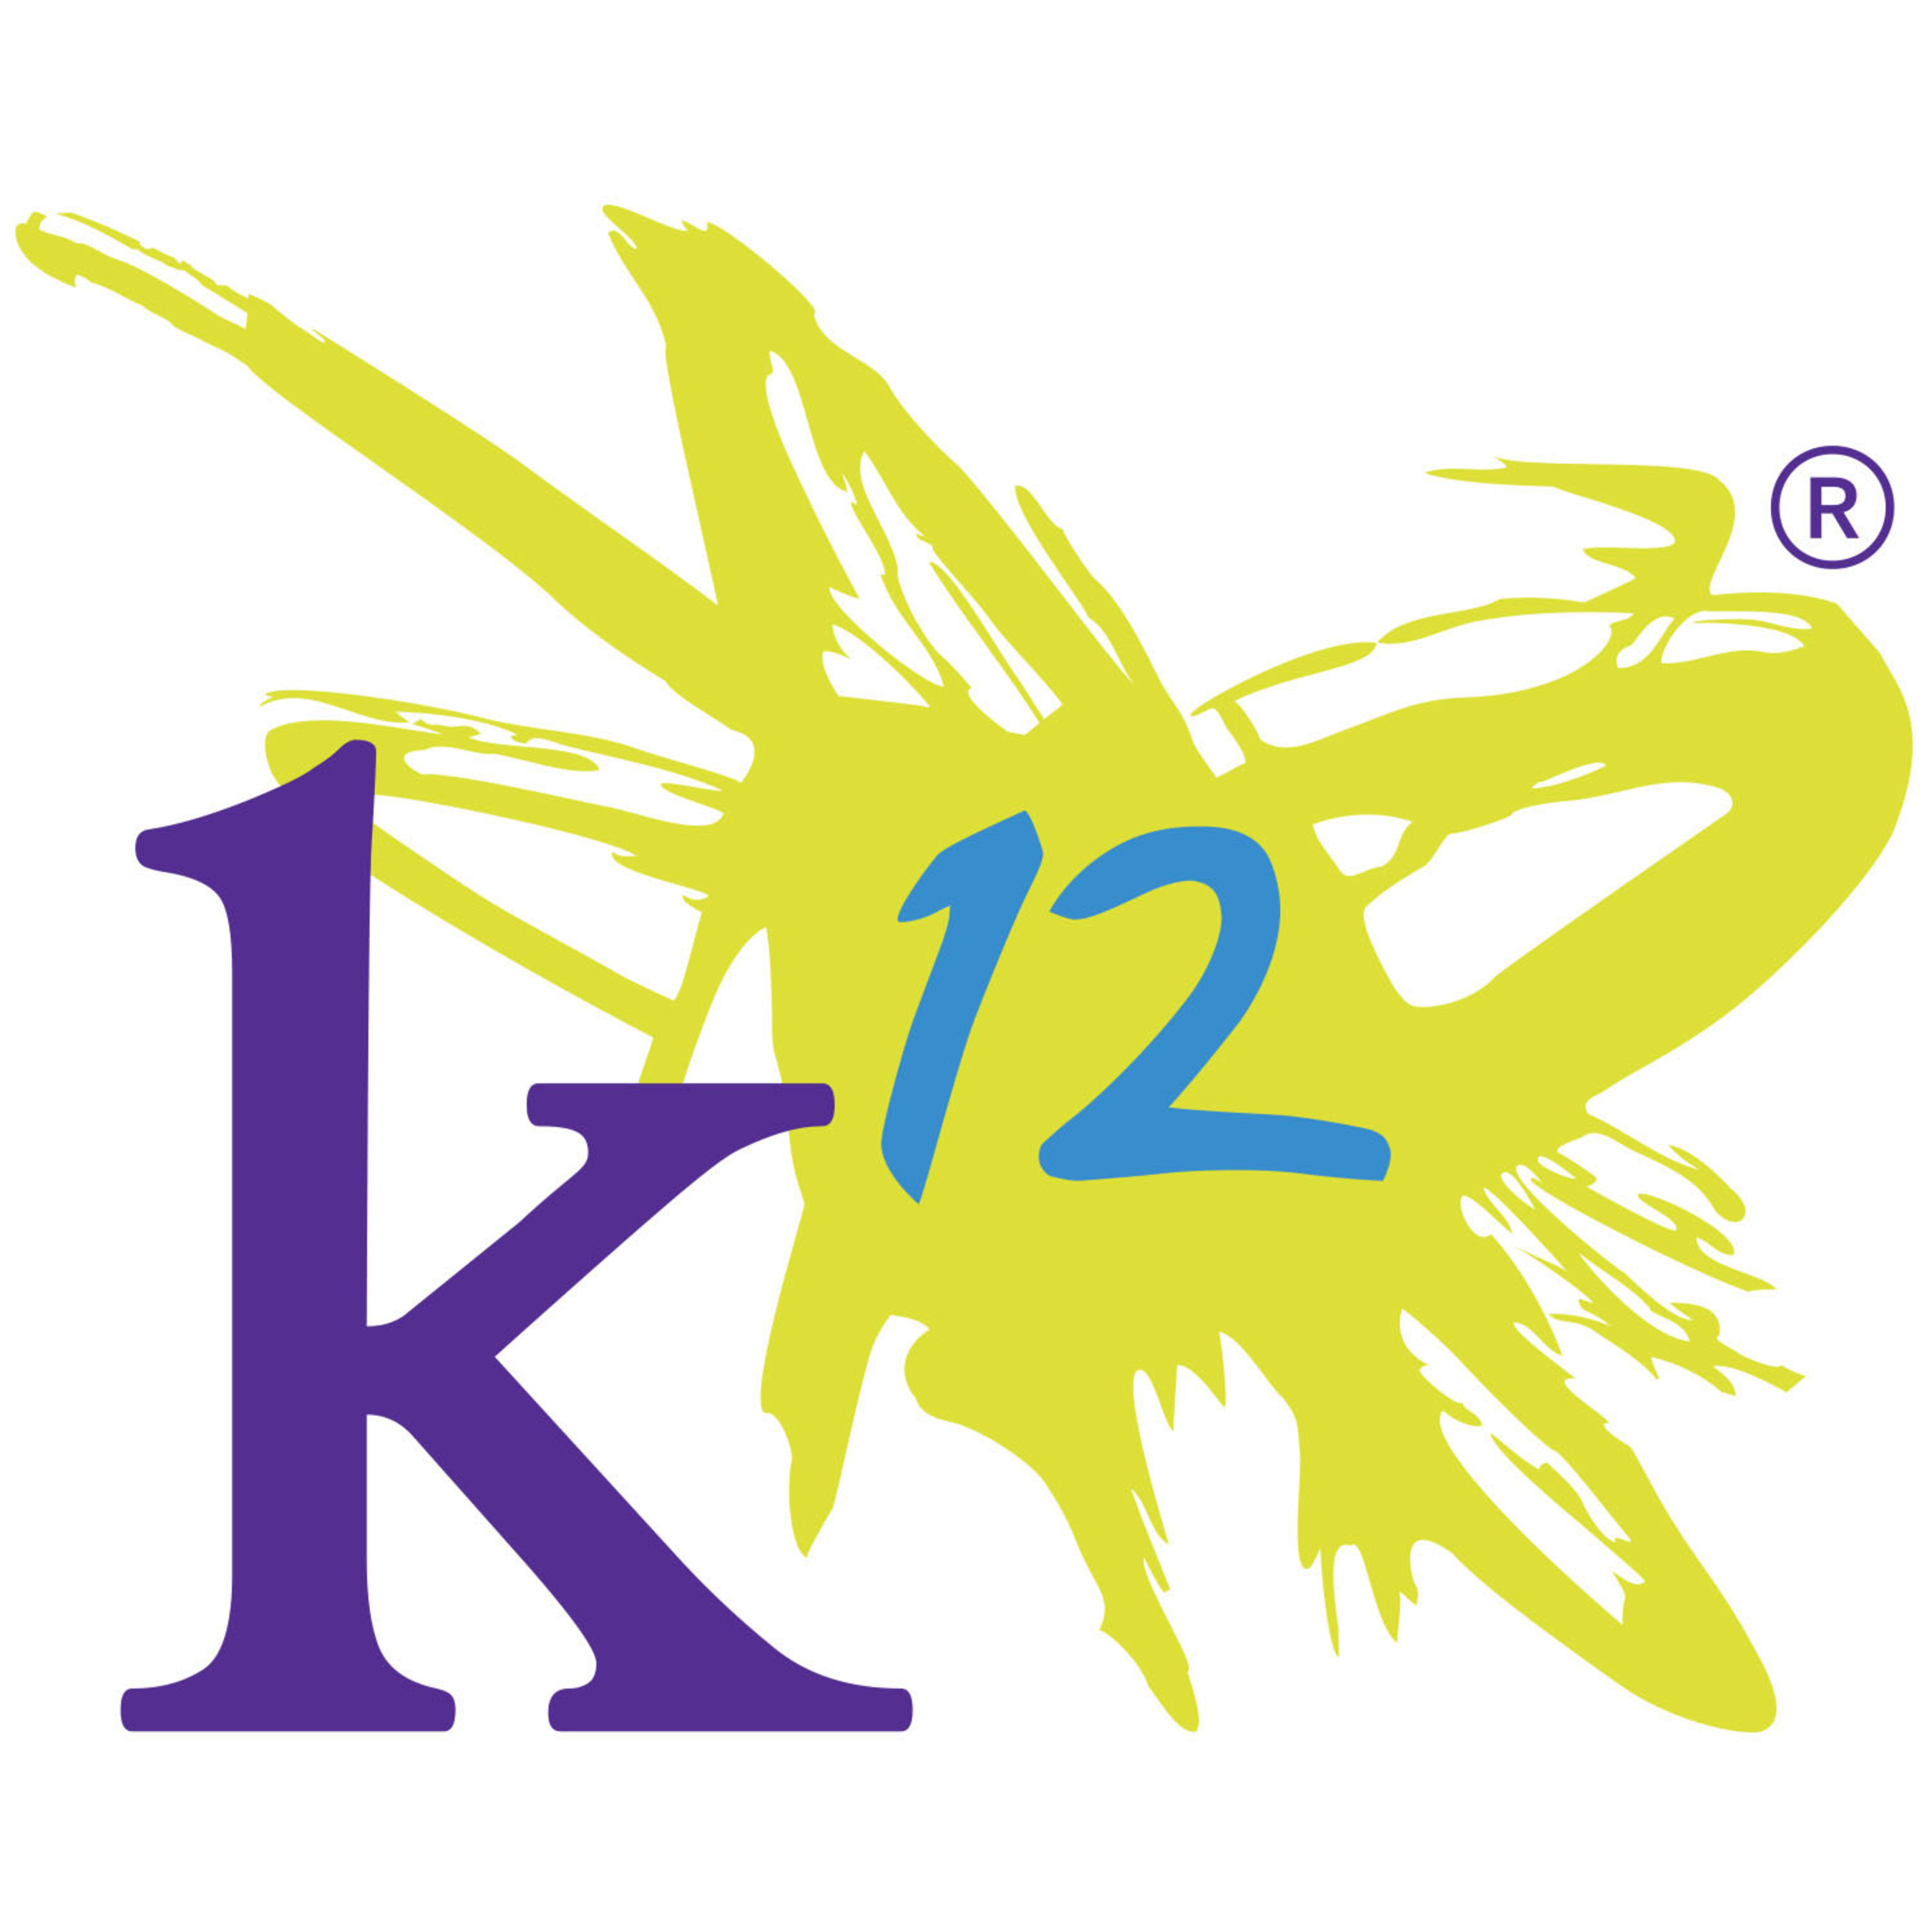 Scholarship clipart credentials. K inc announces new